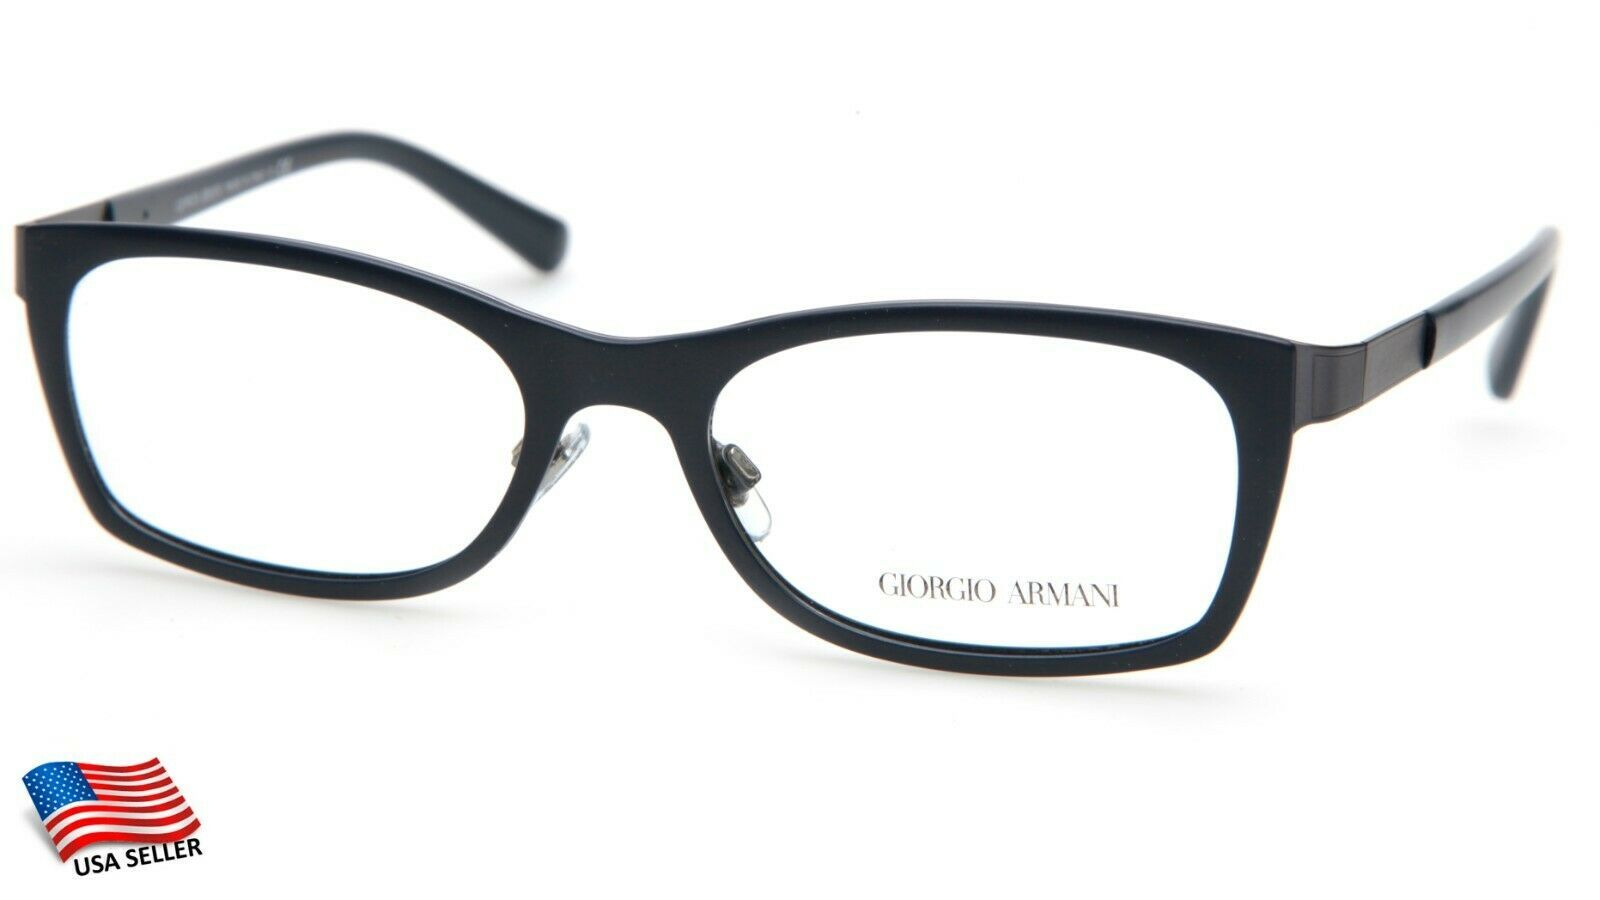 Primary image for NEW GIORGIO ARMANI AR 5013 3030 Dark Blue EYEGLASSES FRAME 52-17-135 B33mm Italy